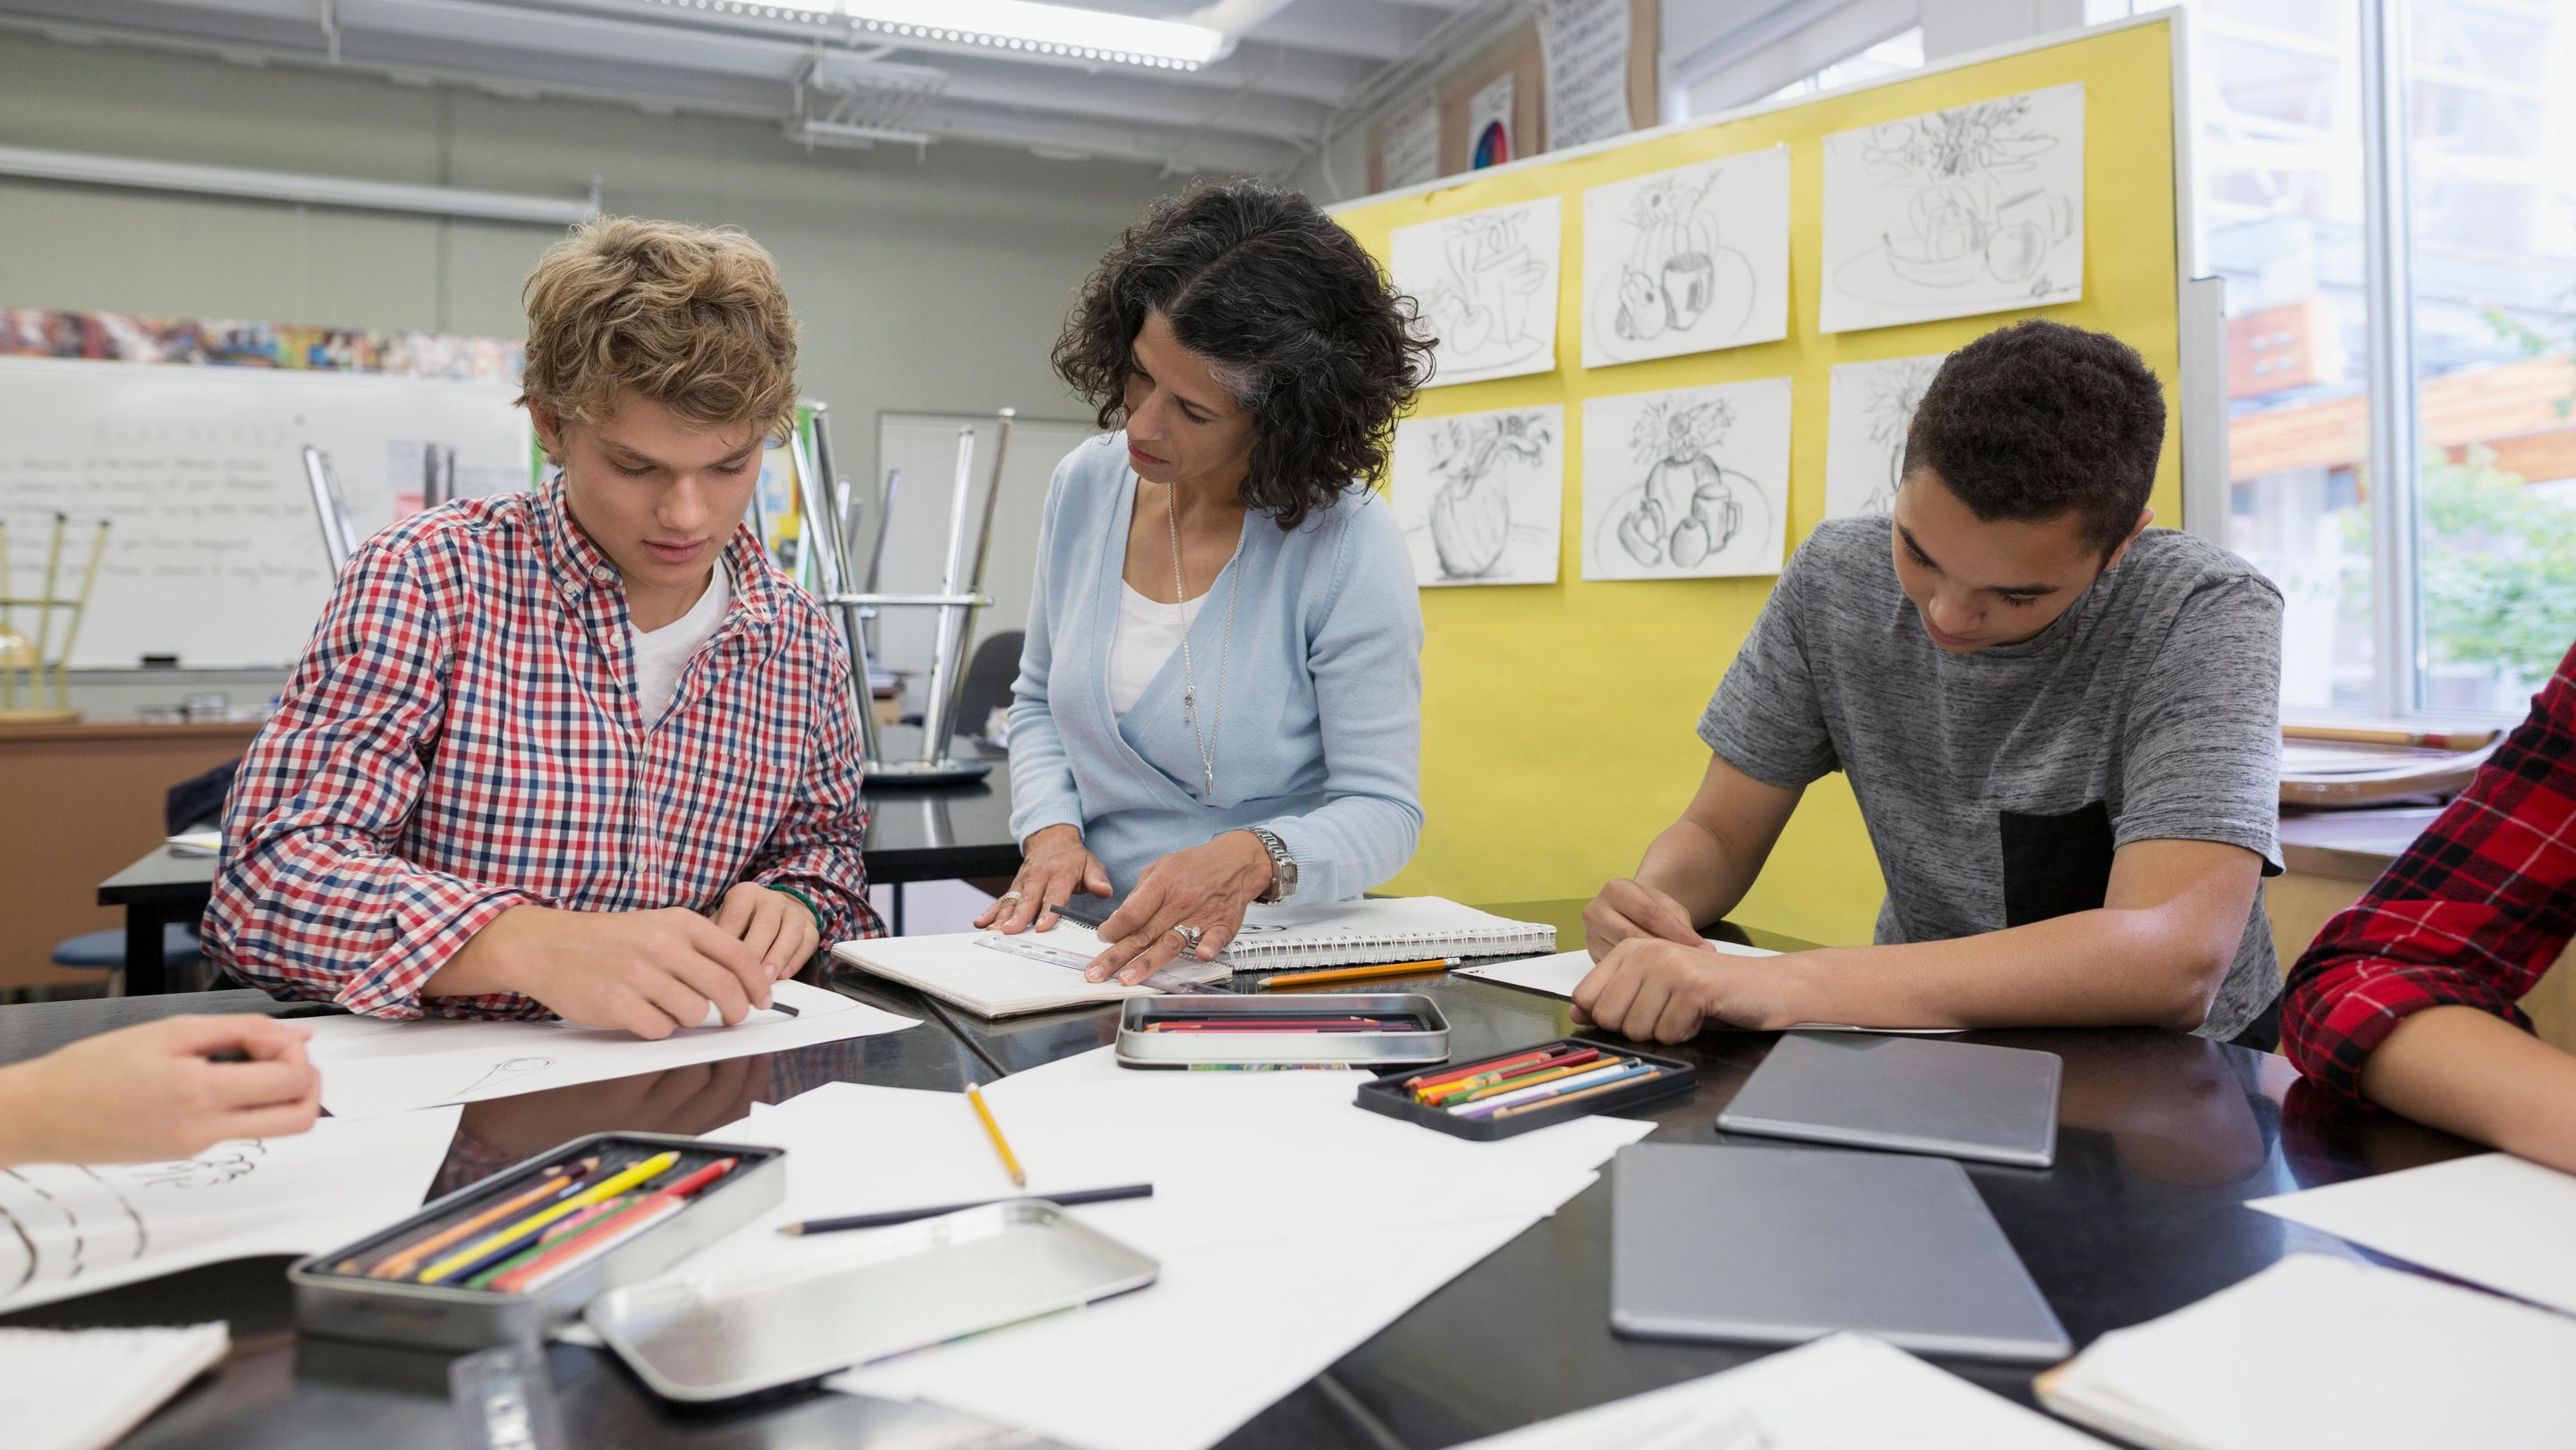 A teacher helping two high school art students with their sketches